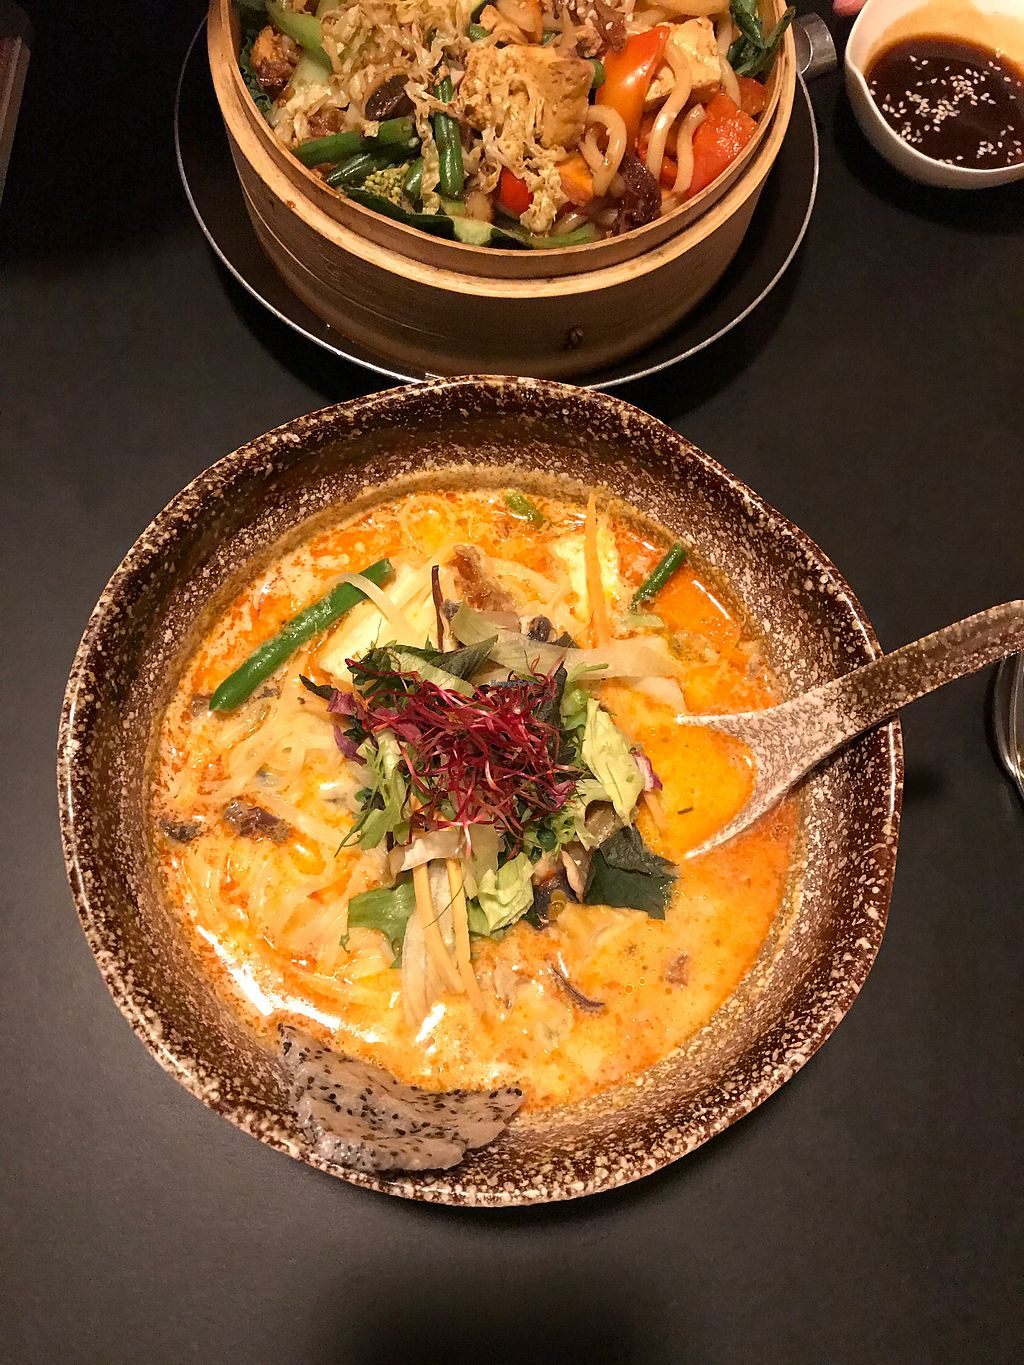 "Photo of Cat Tuong  by <a href=""/members/profile/paz%26ash"">paz&ash</a> <br/>vegan coconut curry soup with tofu and veggies (back is udon noodle stir fry) <br/> August 20, 2017  - <a href='/contact/abuse/image/53569/294794'>Report</a>"